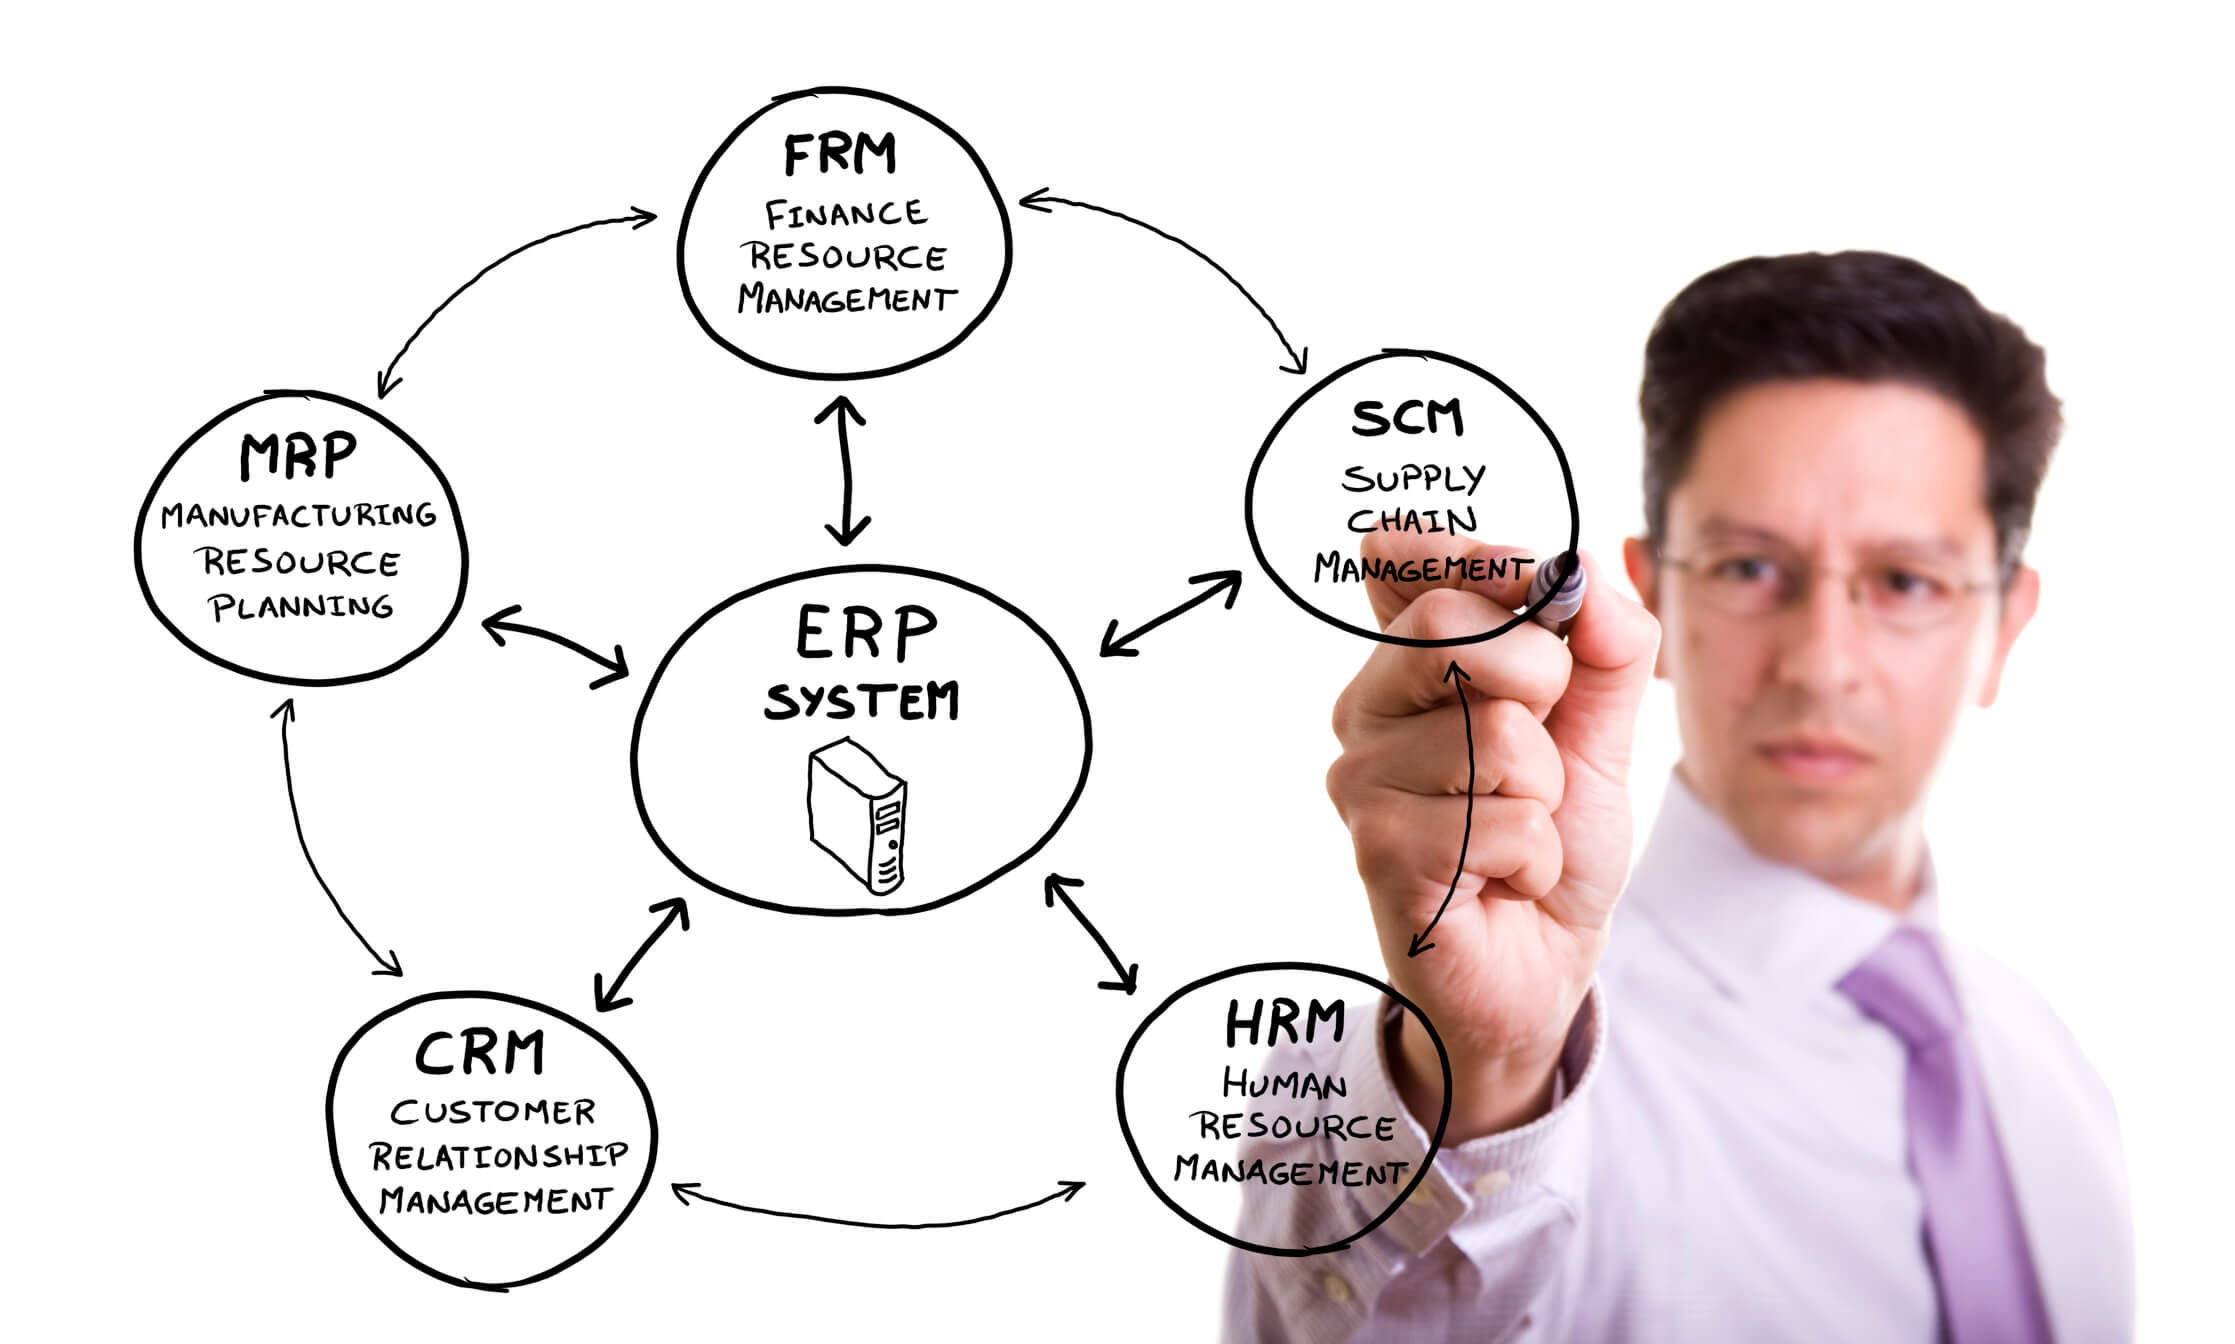 What is the Difference Between Traditional ERP Systems and ERP Mature Solutions?